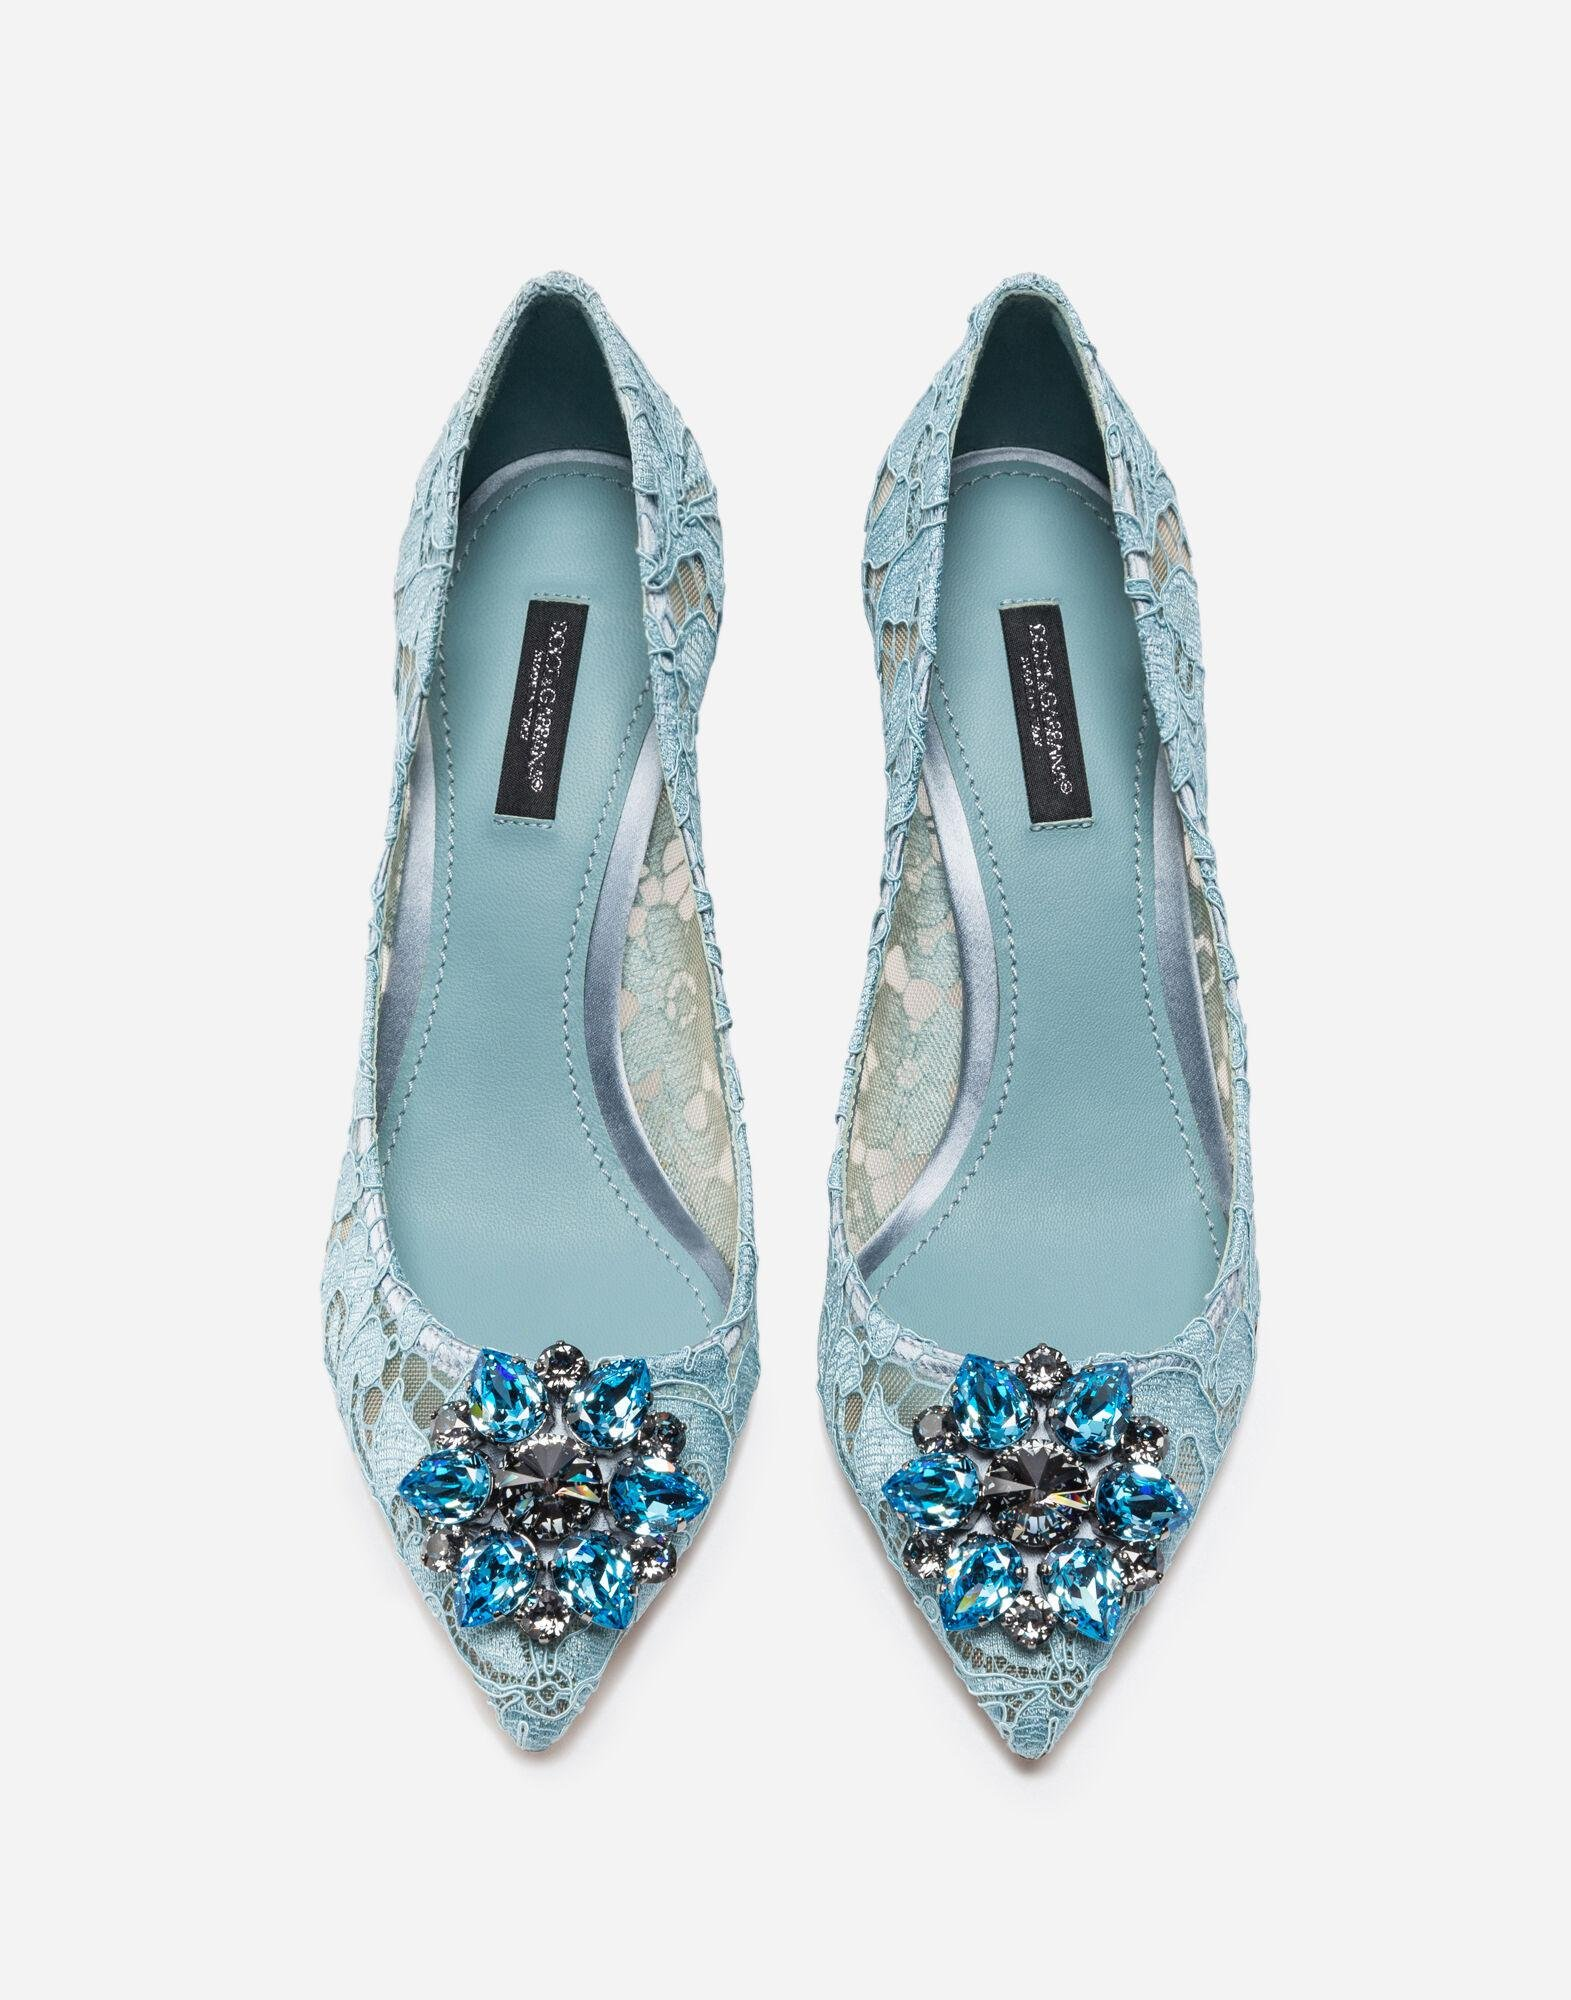 Pump in Taormina lace with crystals 2